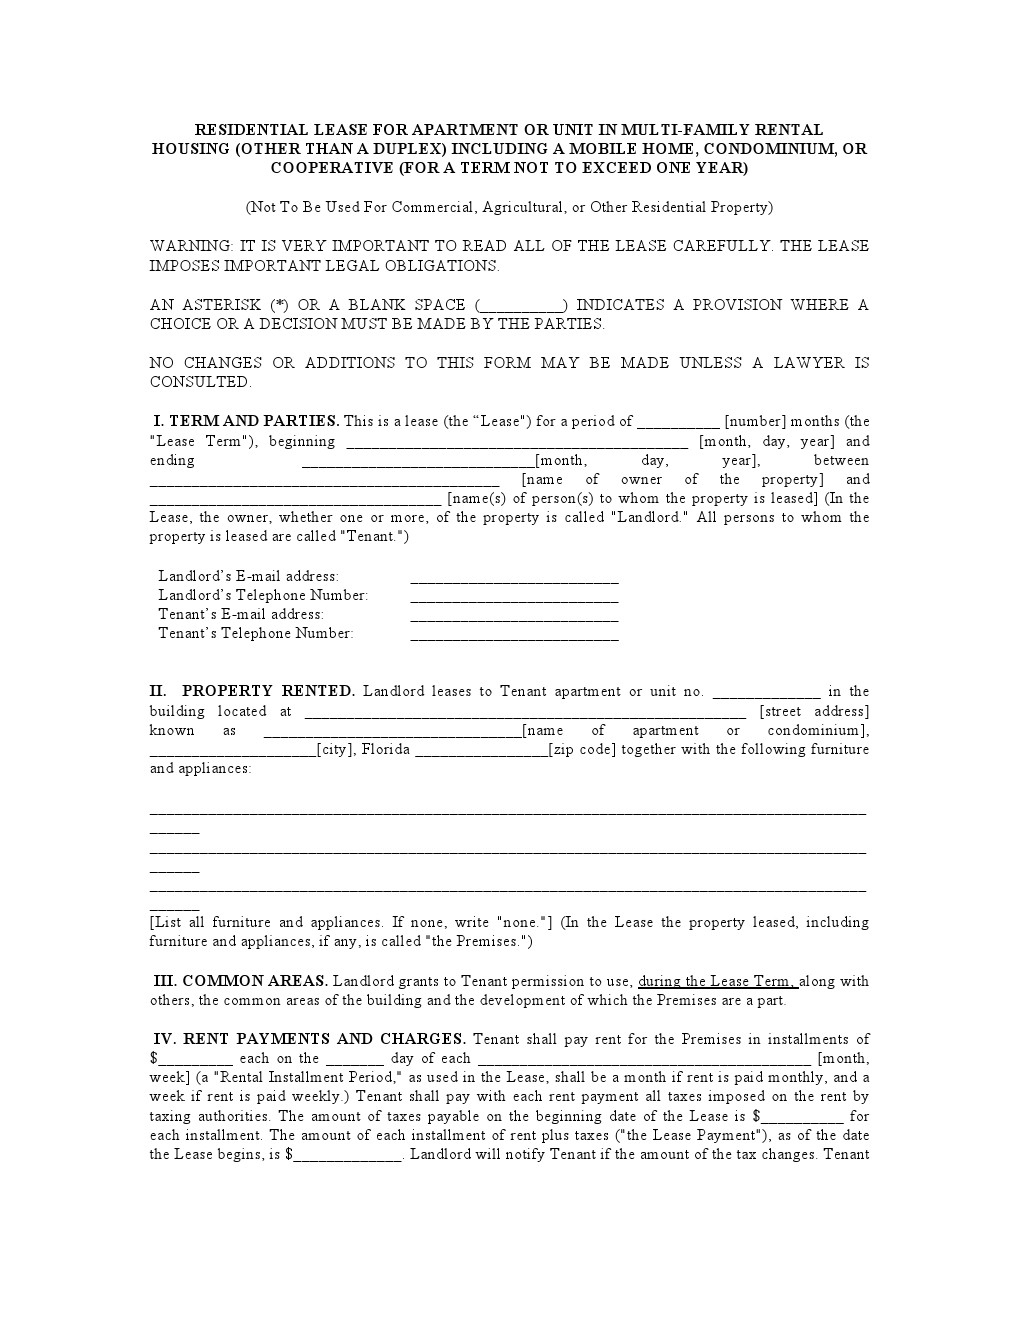 Download Free Florida Residential Lease Agreement - Printable Lease - Free Printable Florida Residential Lease Agreement